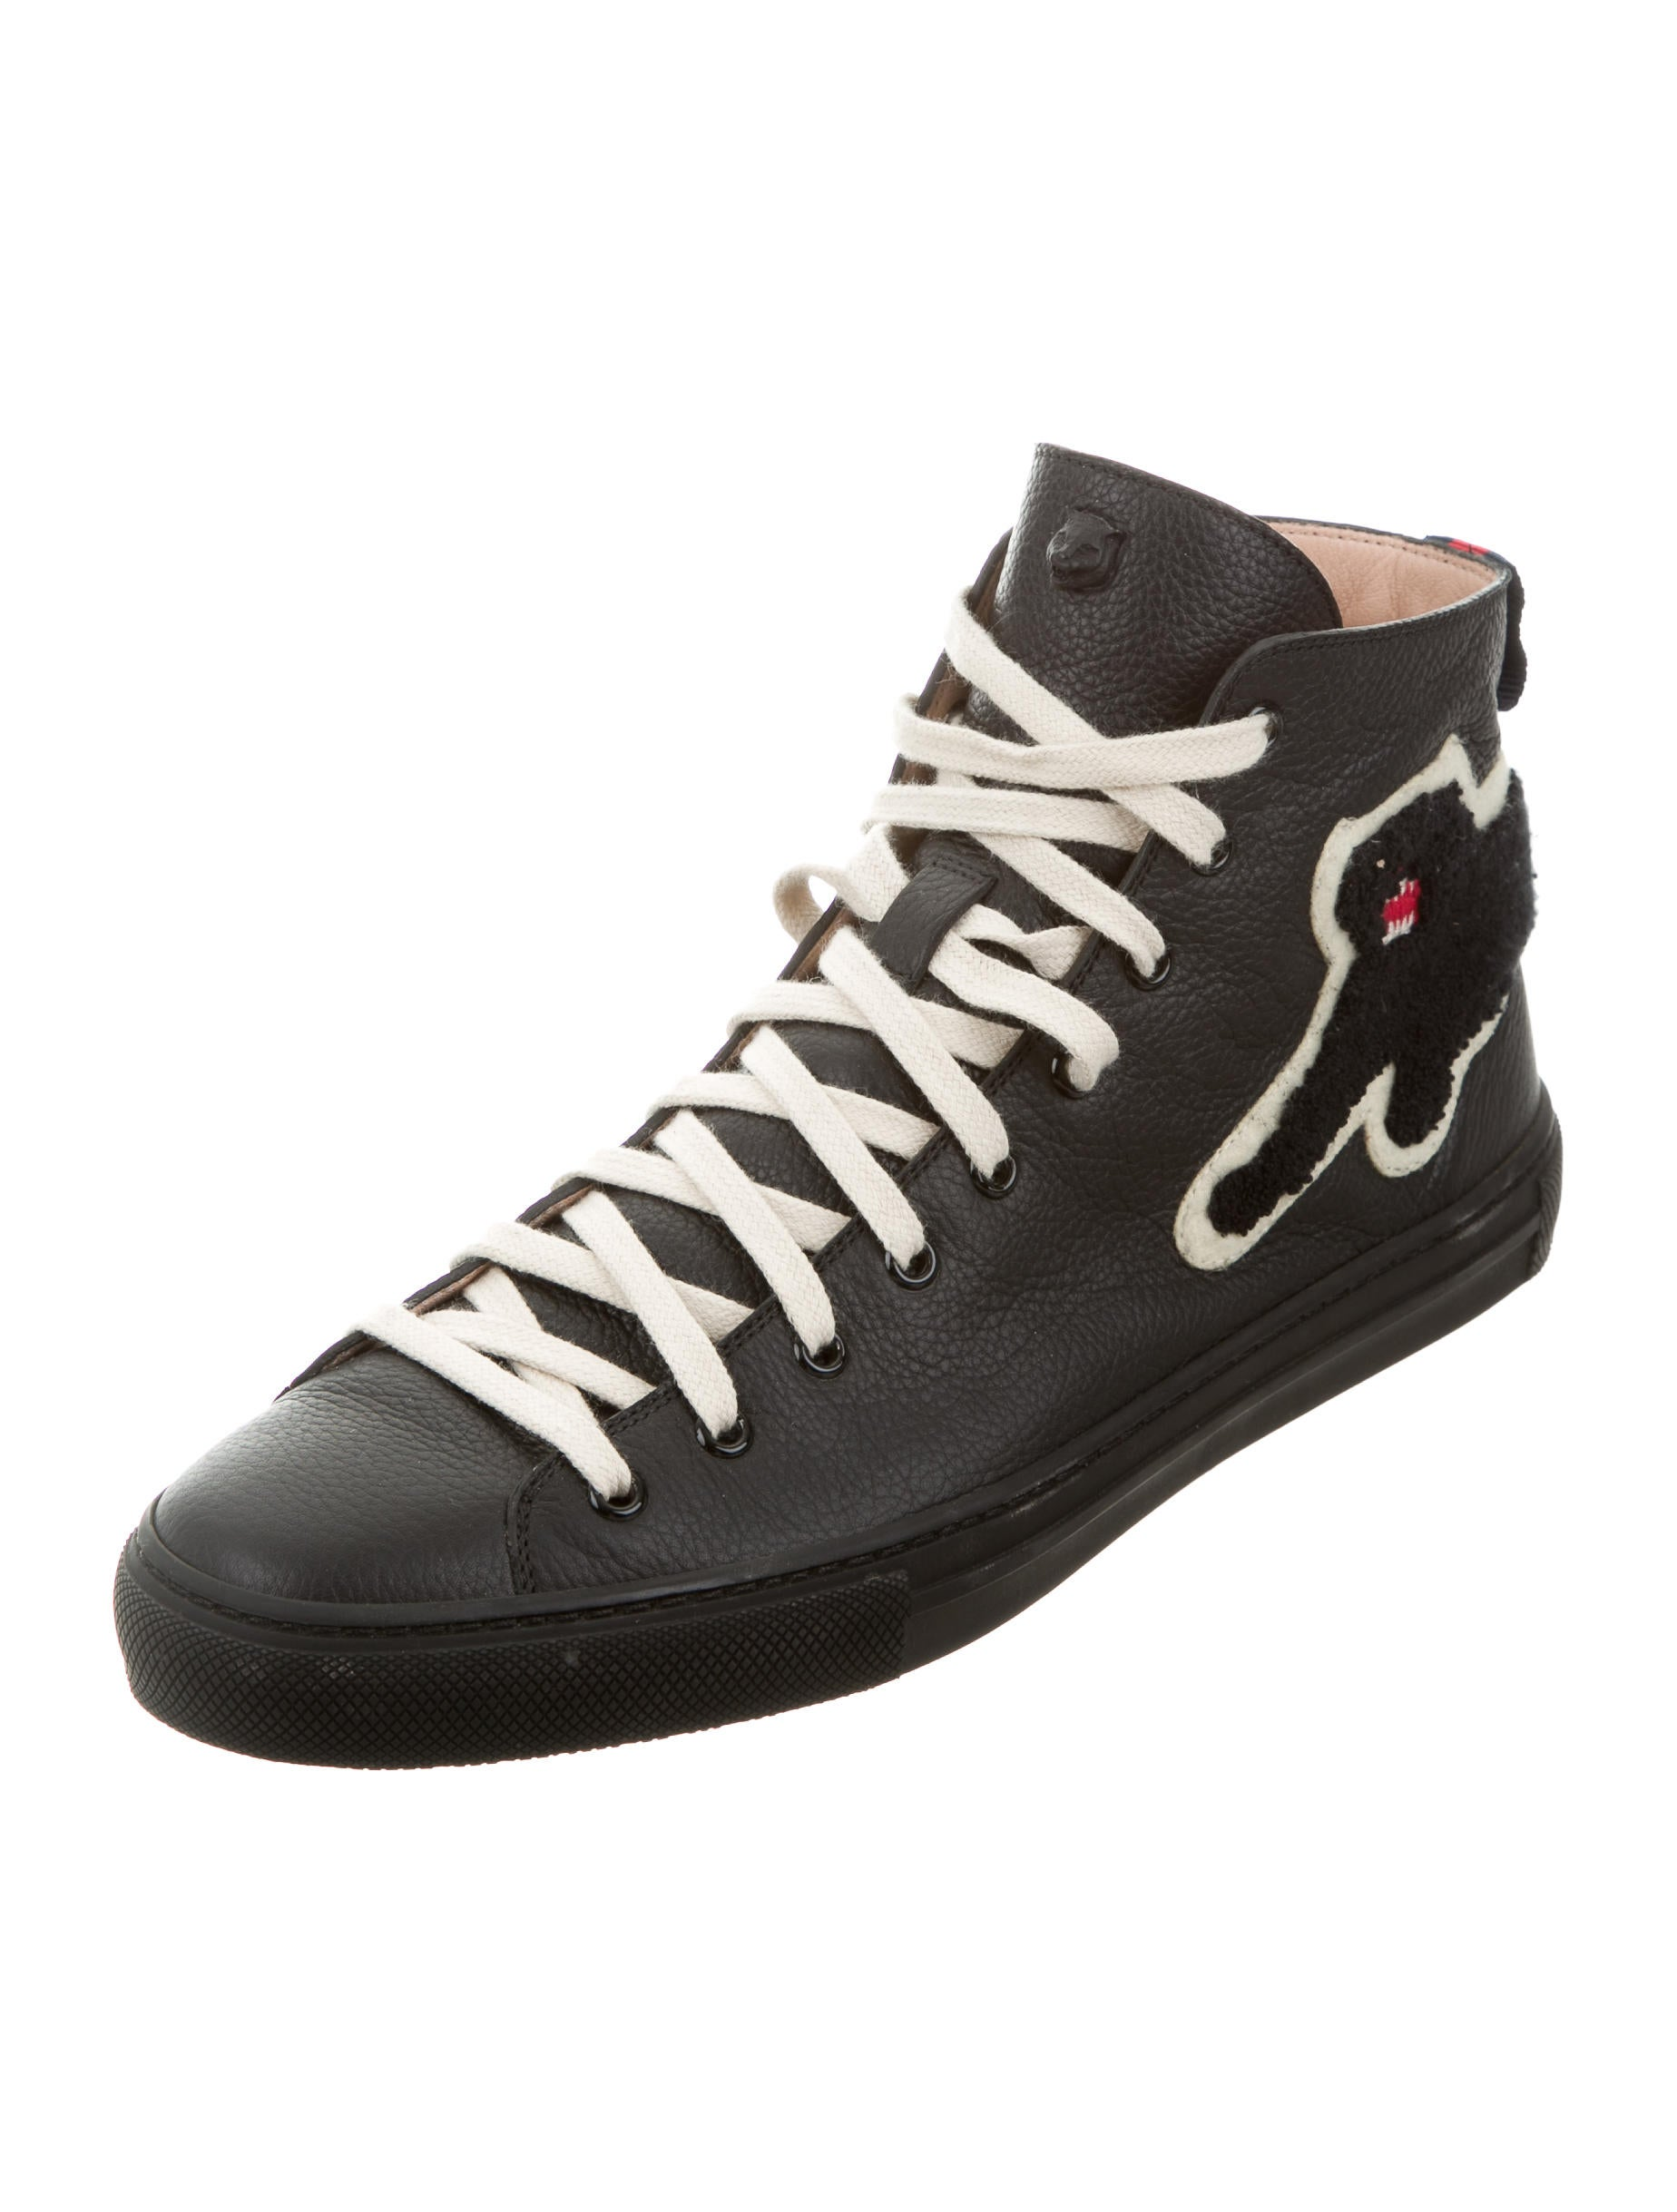 Gucci Embroidered Black Panther Sneakers Shoes